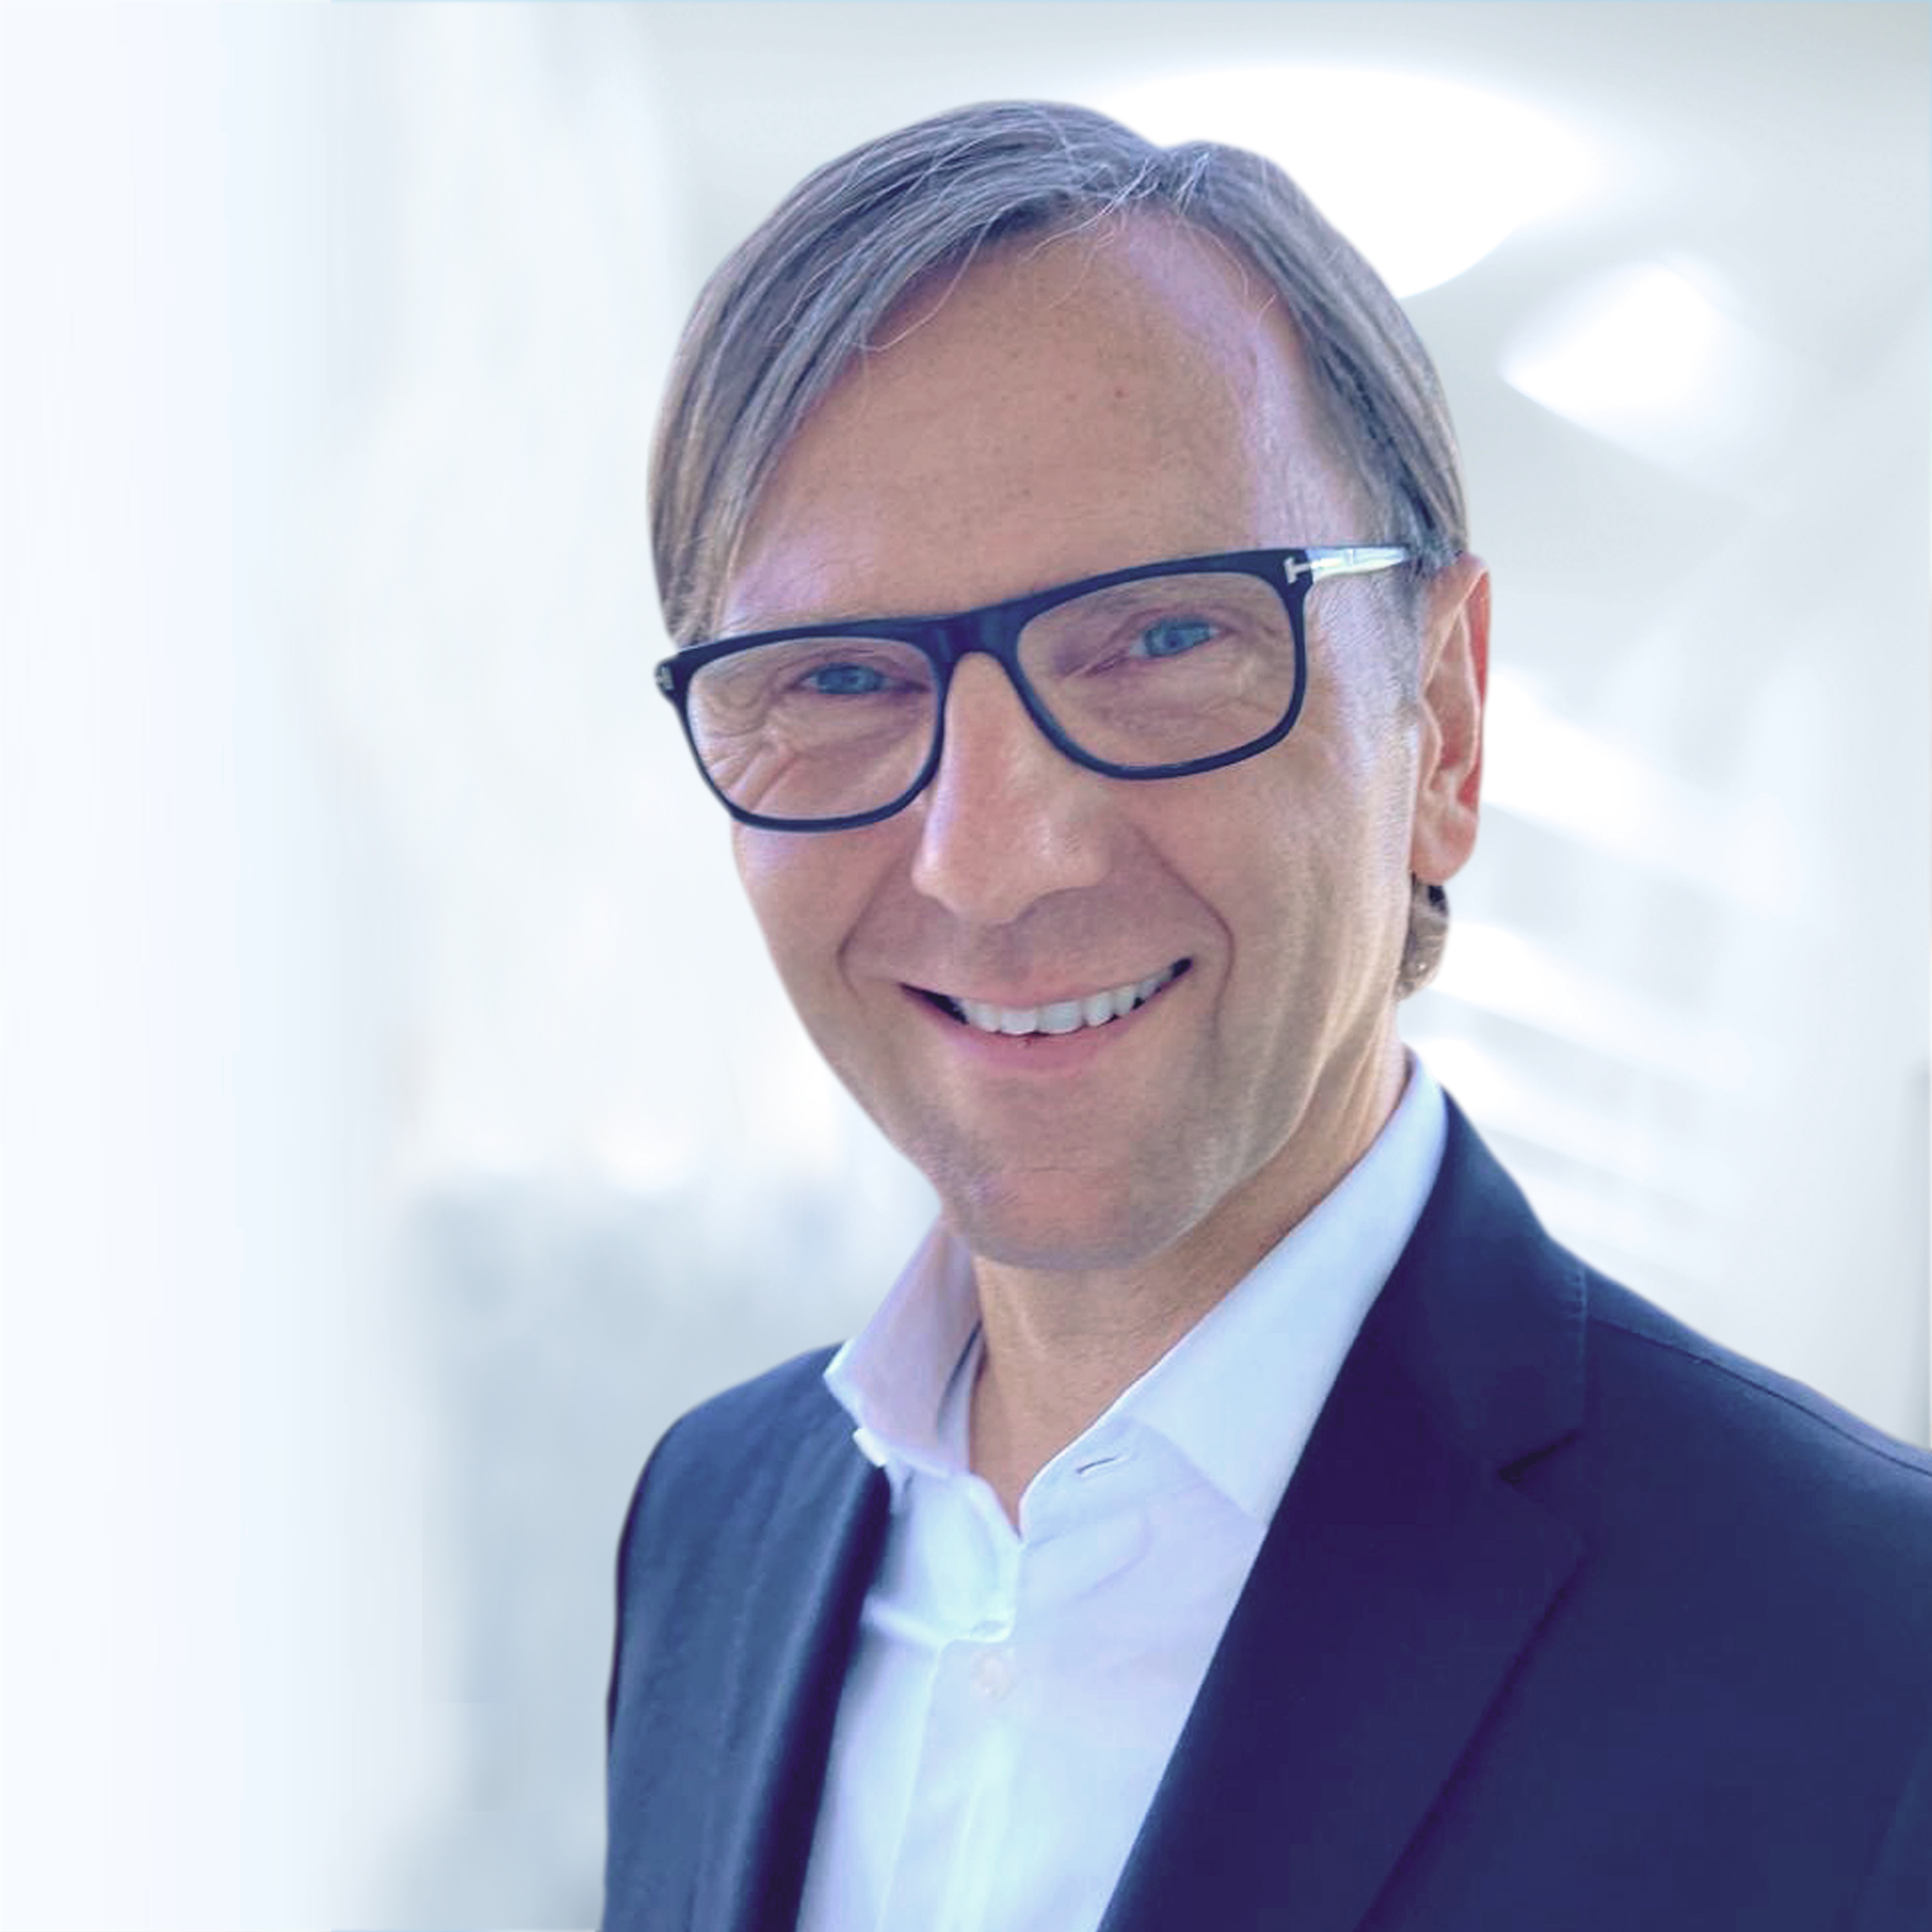 PROCAD taps Gerhard Knoch as new Managing Director